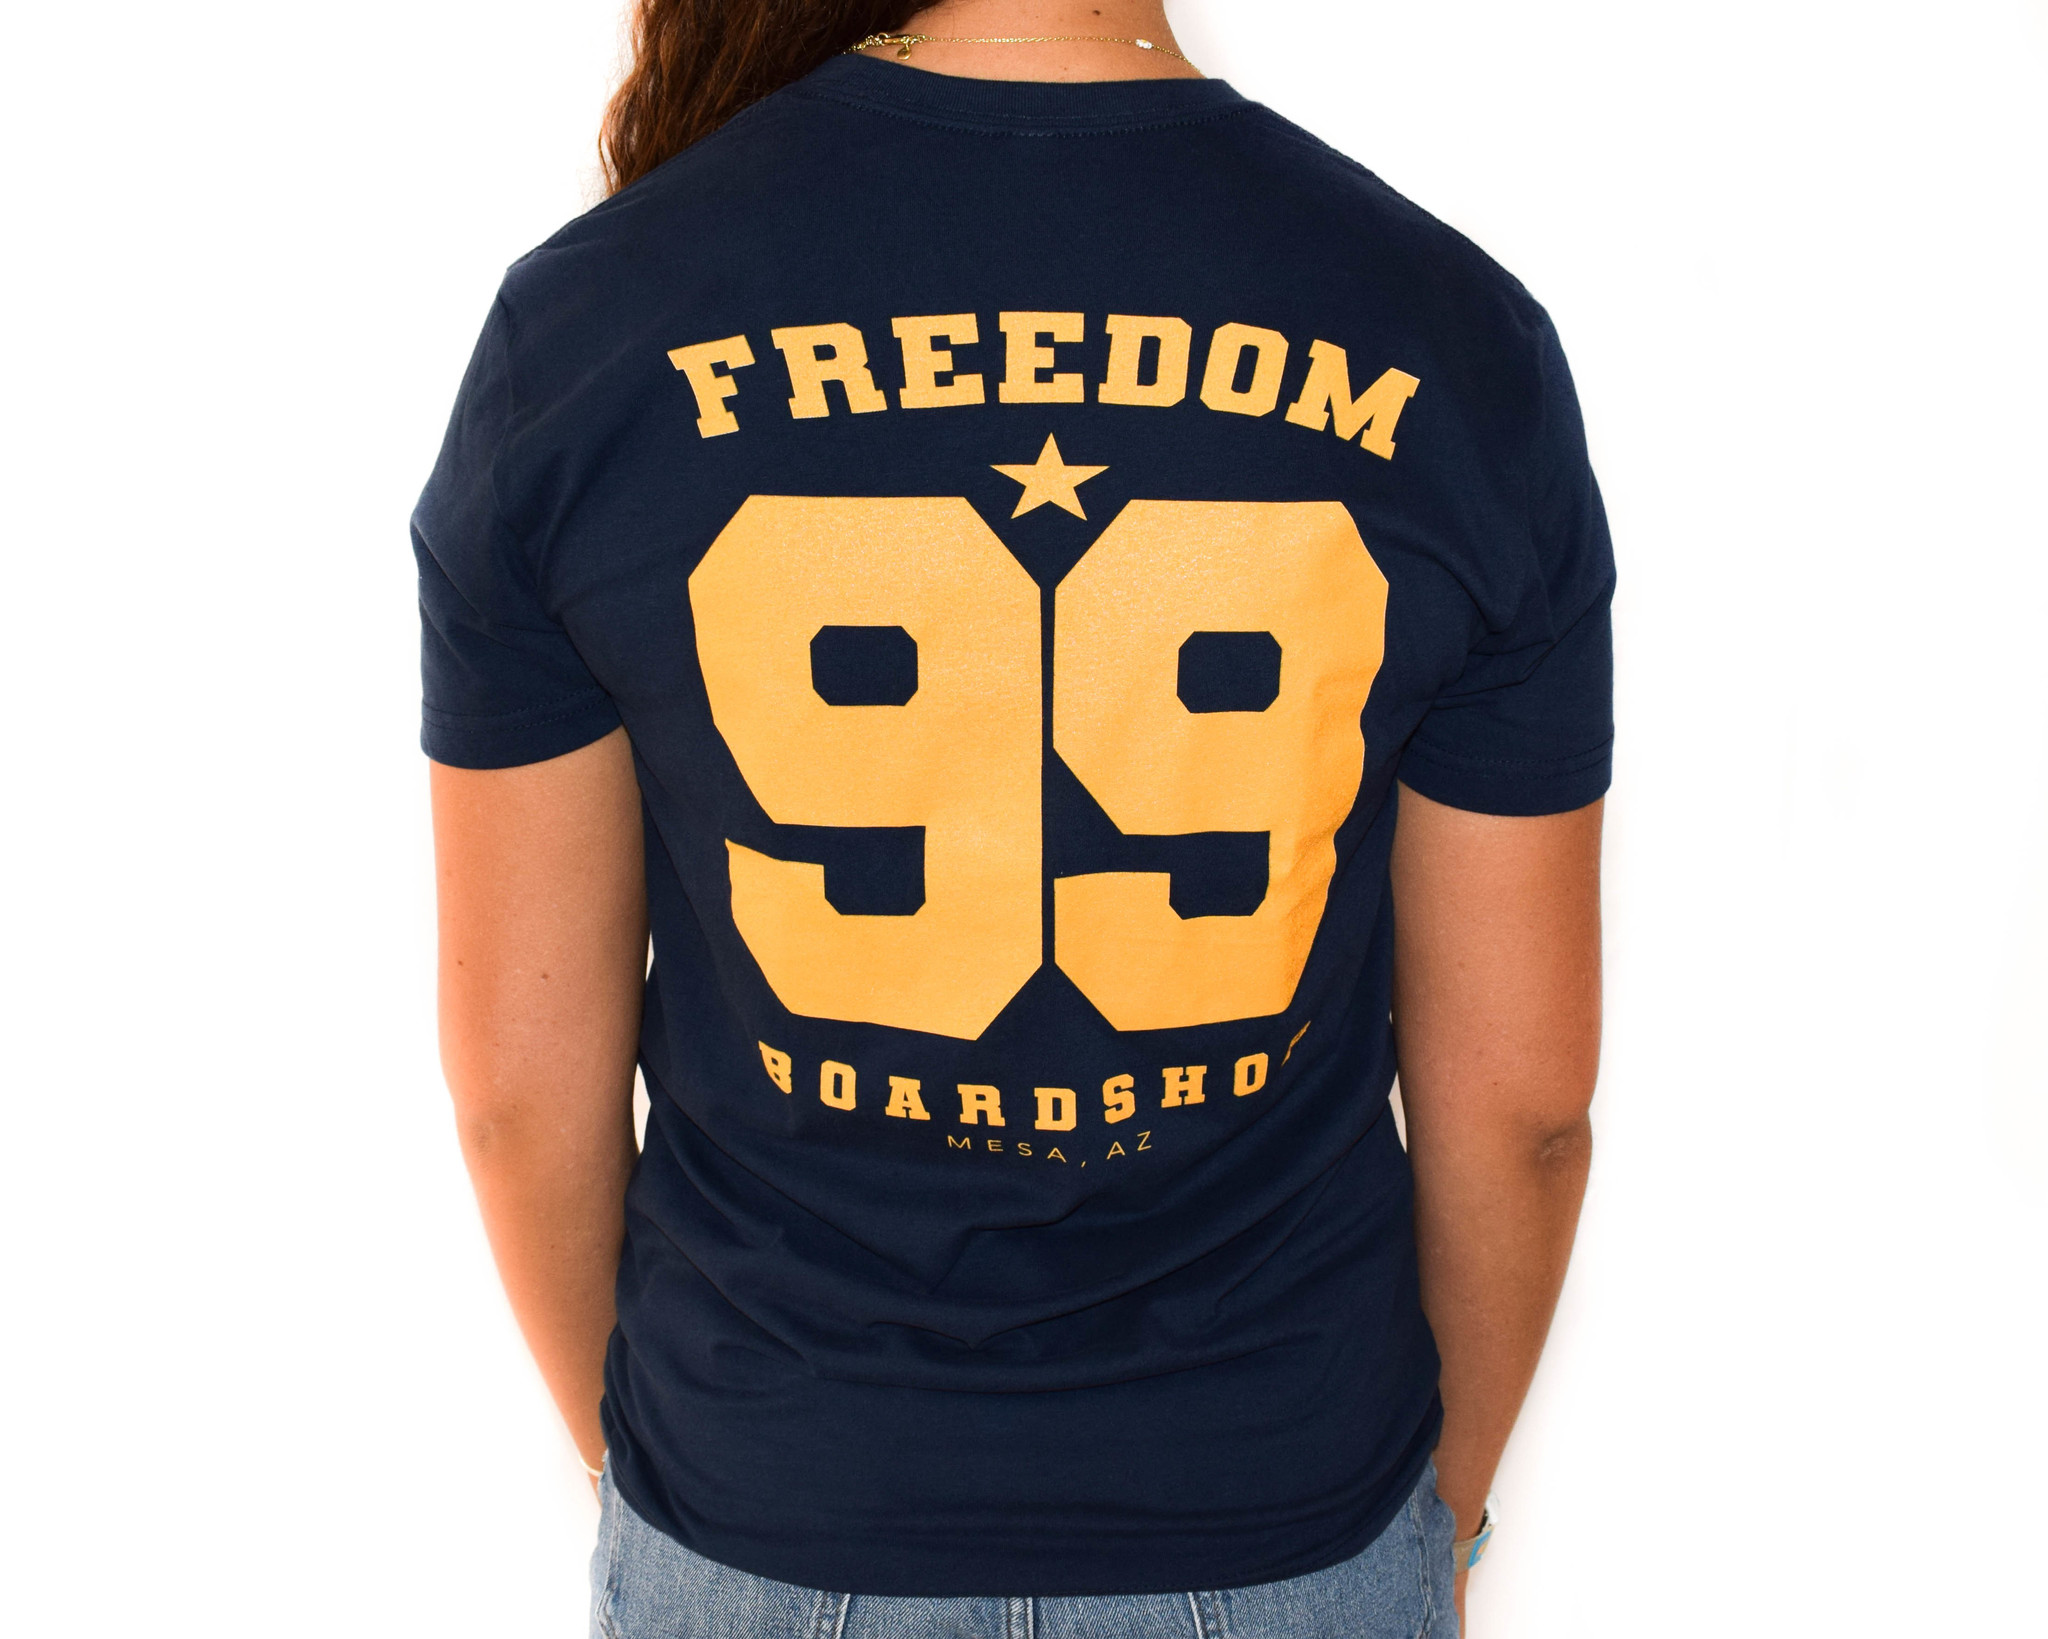 Freedom Boardshop TEE-FREEDOM VARSITY